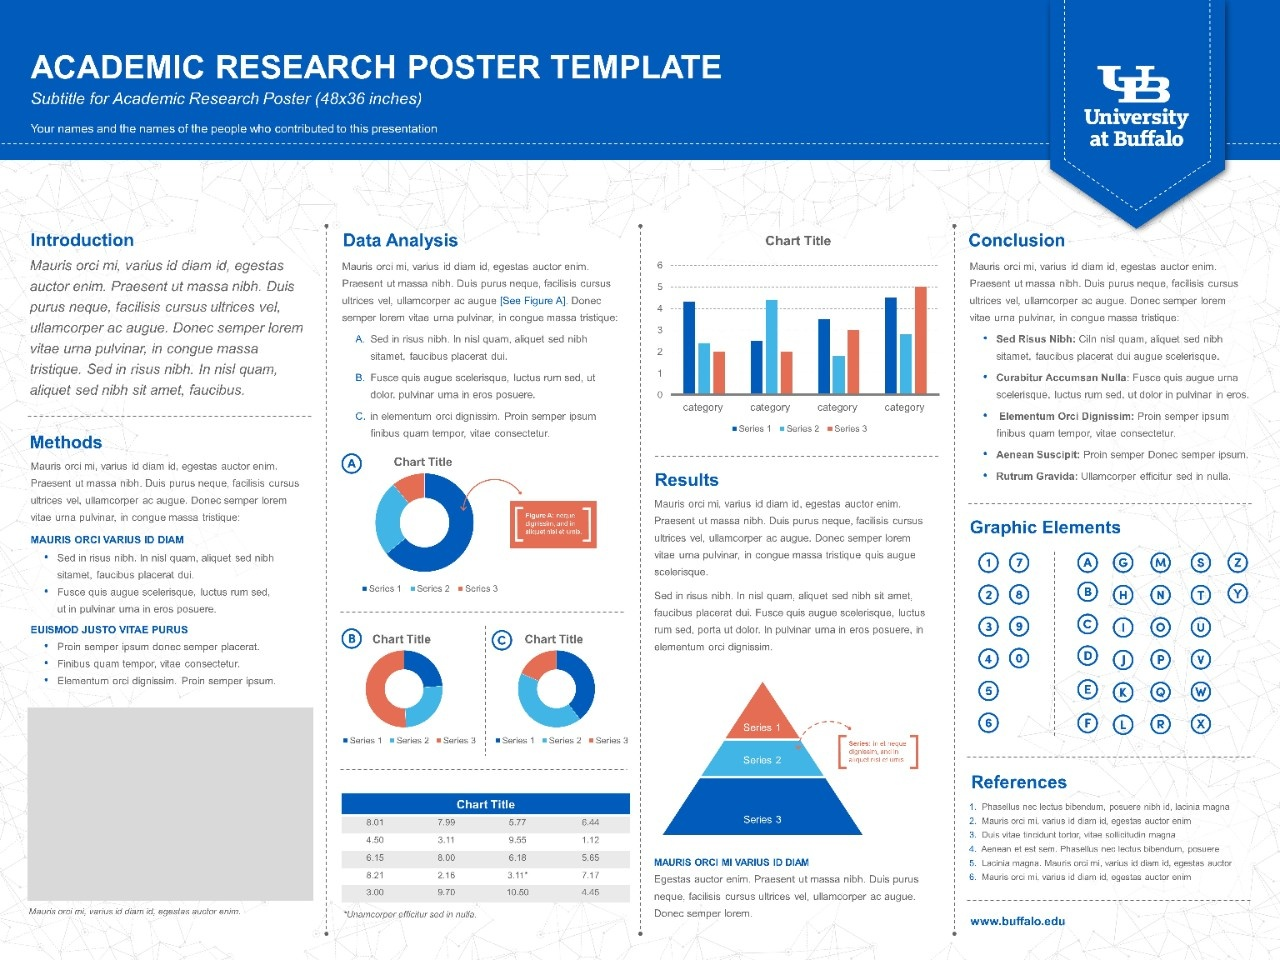 powerpoint poster templates 48x36 - presentation templates university at buffalo school of